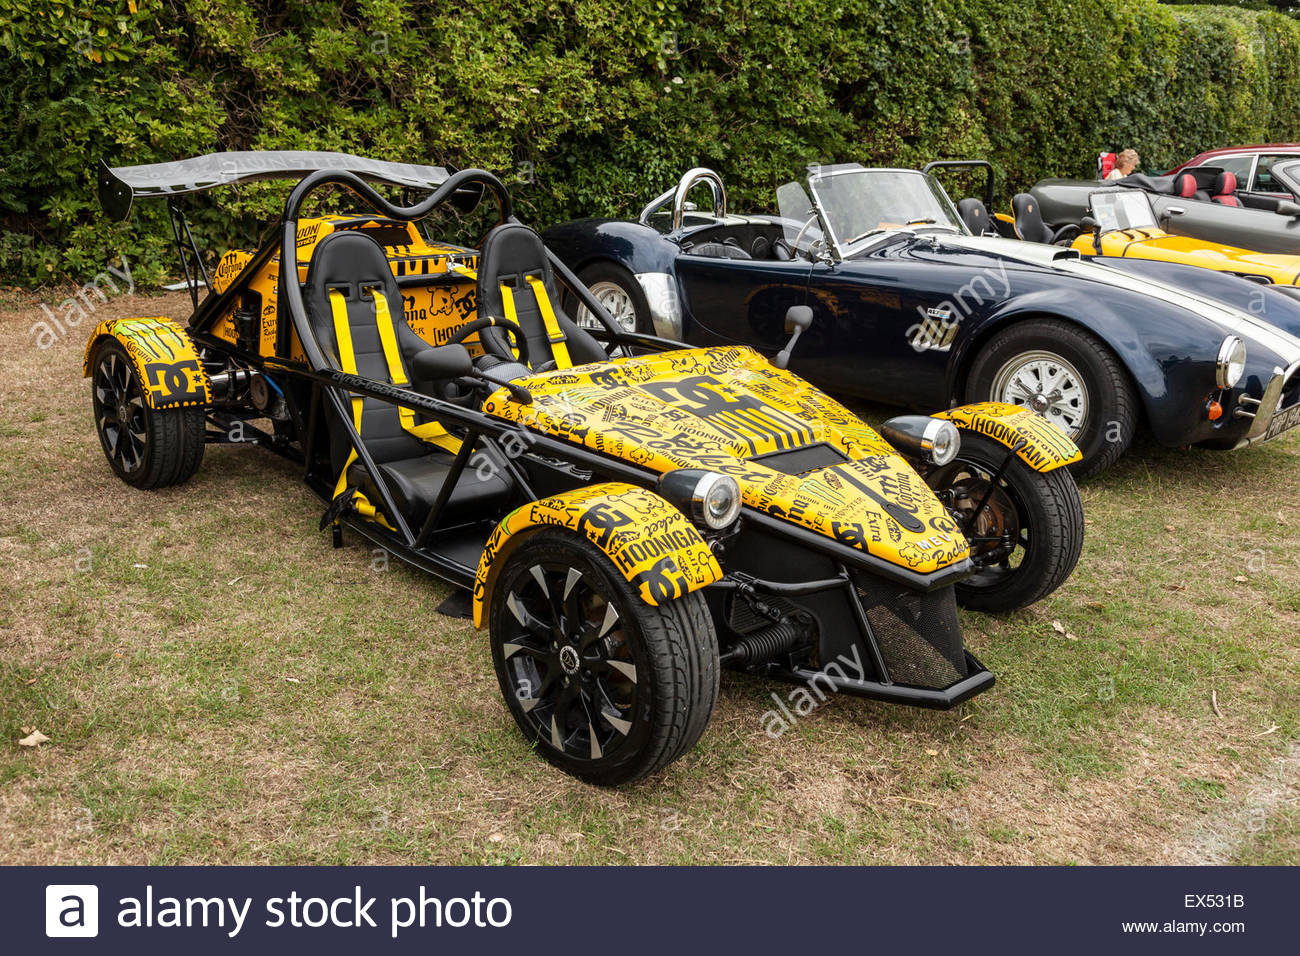 Mev Kit Car Stock Photo Royalty Free Image 84934679 Alamy